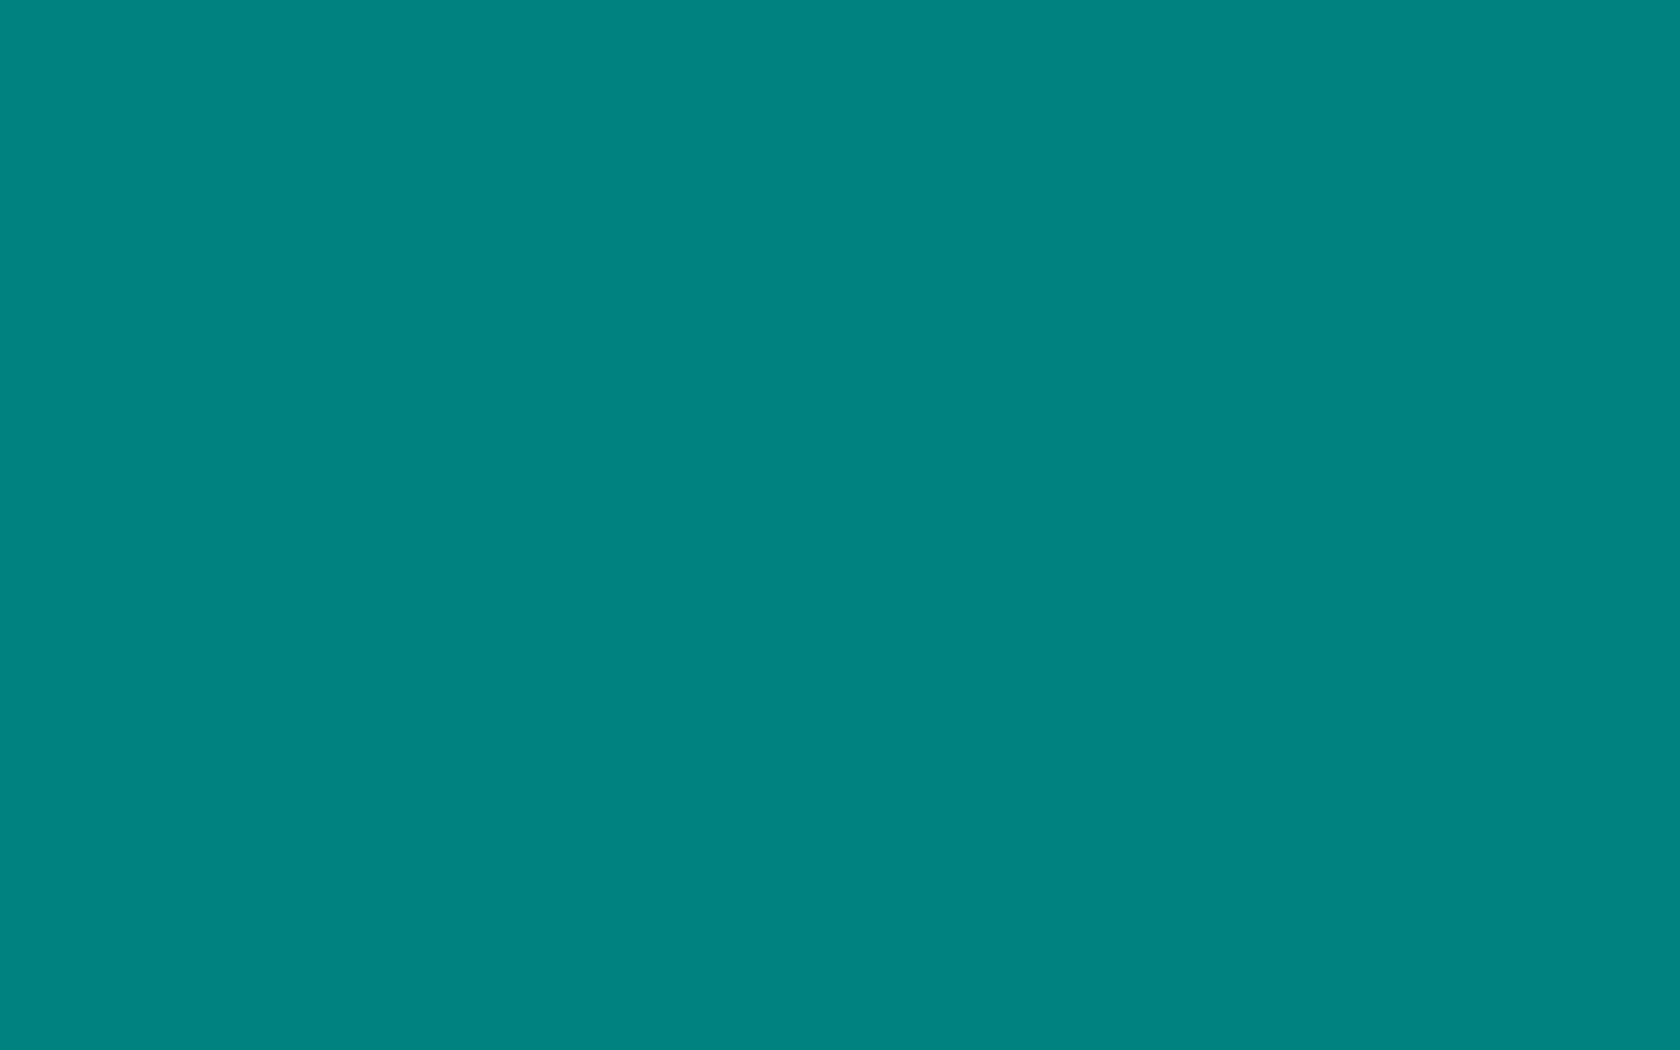 1680x1050 Teal Green Solid Color Background